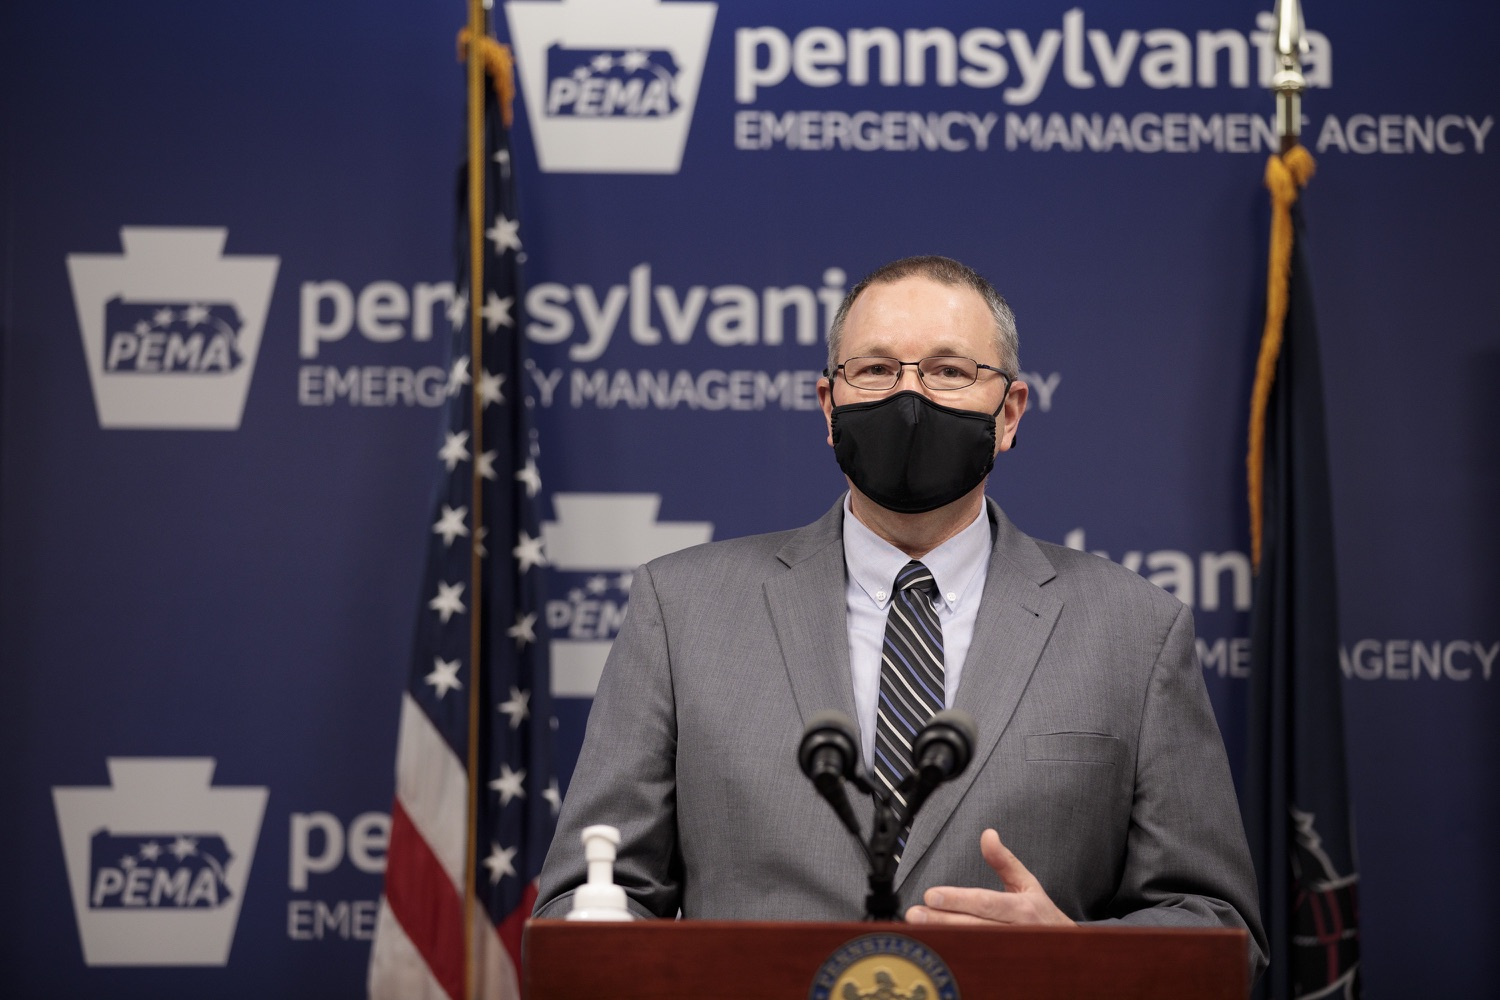 "<a href=""https://filesource.wostreaming.net/commonwealthofpa/photo/18472_gov_vaccine_dz_15.jpg"" target=""_blank"">⇣ Download Photo<br></a>PEMA Director Randy Padfield speaks at the press conference.  The commonwealths COVID-19 vaccination distribution plan was designed to be fluid and flexible to meet guidance and recommendations from the federal government. Today, Governor Tom Wolf and Secretary of Health Dr. Rachel Levine announced the fourth version of the plan, detailing the updates and how the state is working to ensure safe, swift implementation. Harrisburg, PA  January 8, 2021"